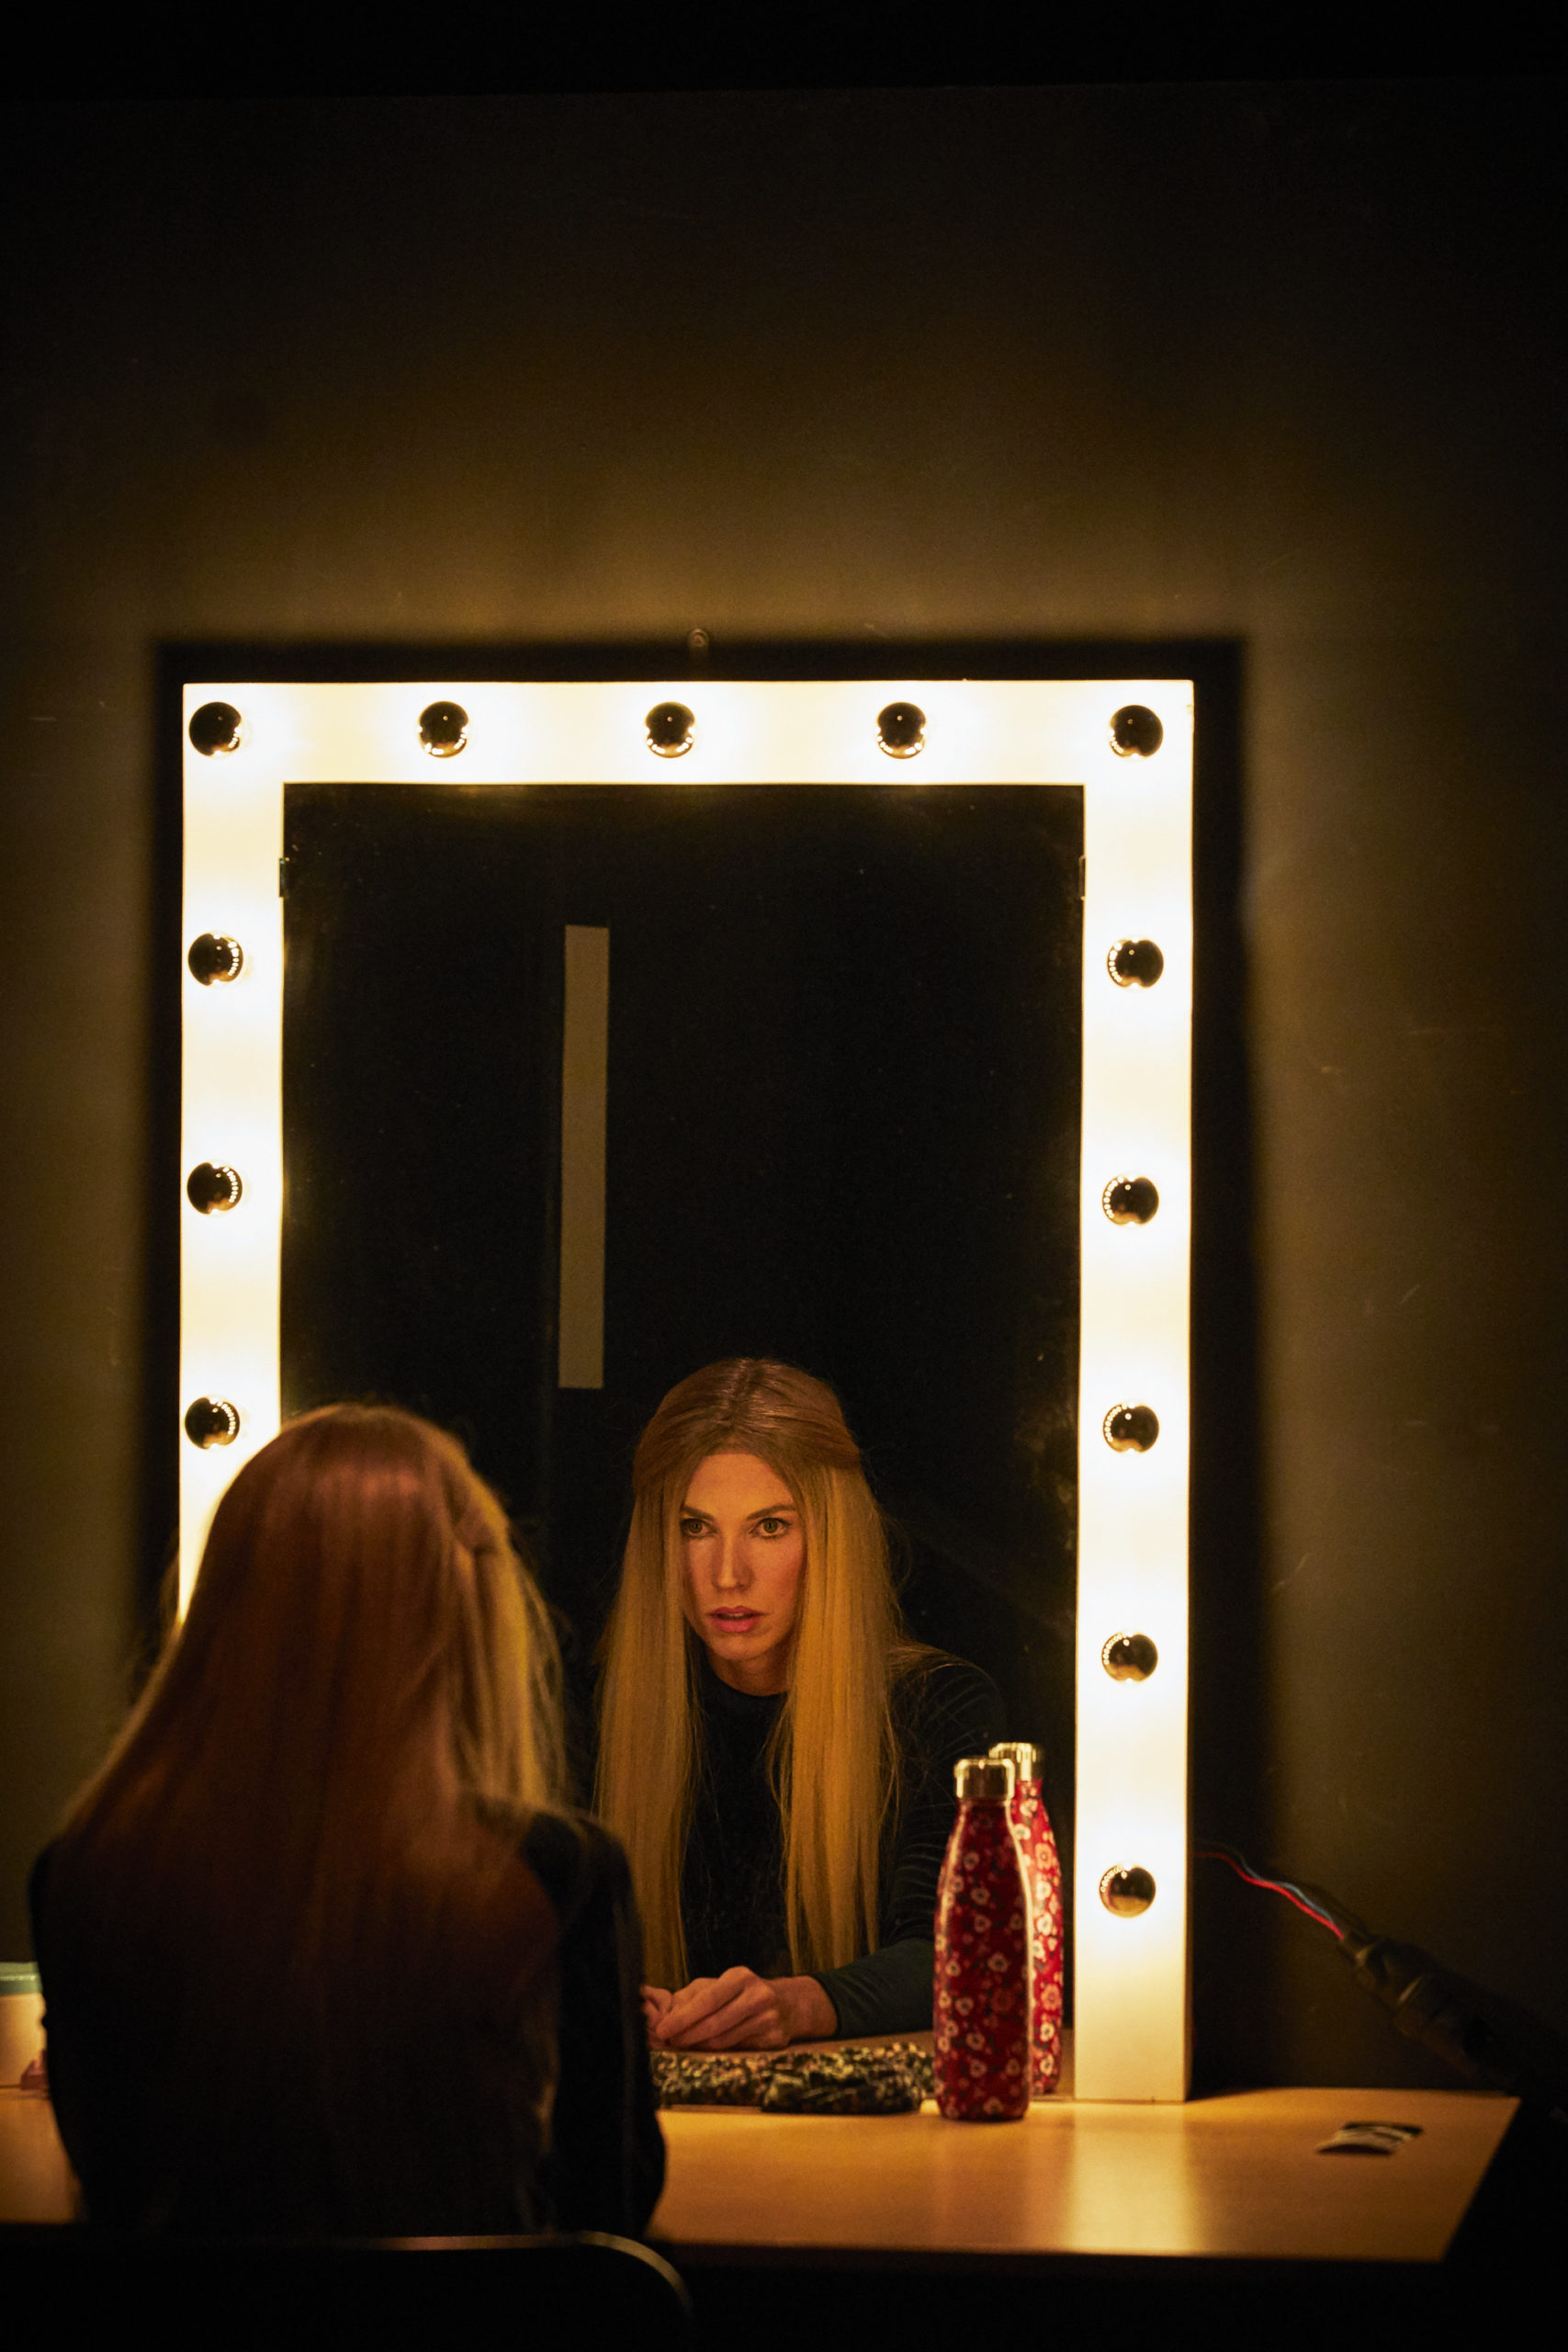 Femme-miroir-Theatre-Ouvert-Blog-Alternatives-Theatrales